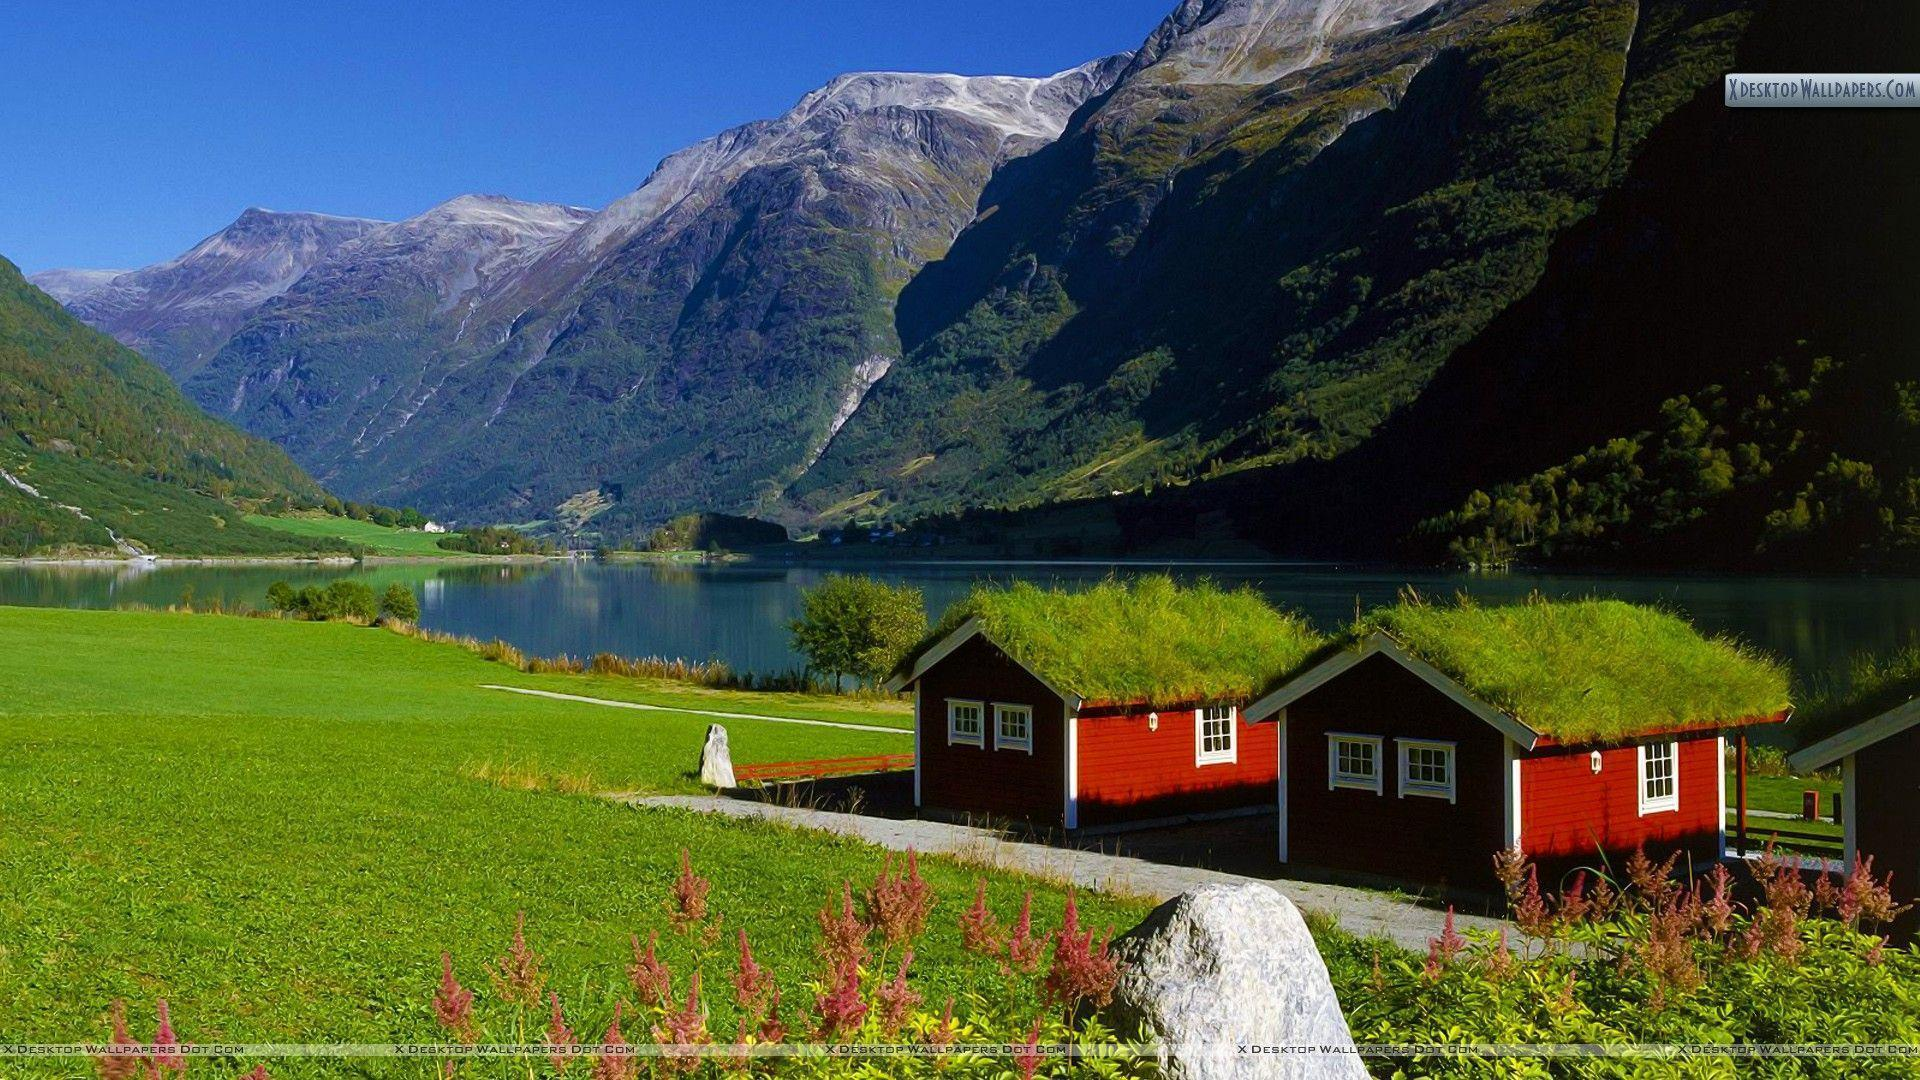 Norway Wallpaper, 31 Norway Photos and Pictures, RT48 HDQ Wallpapers